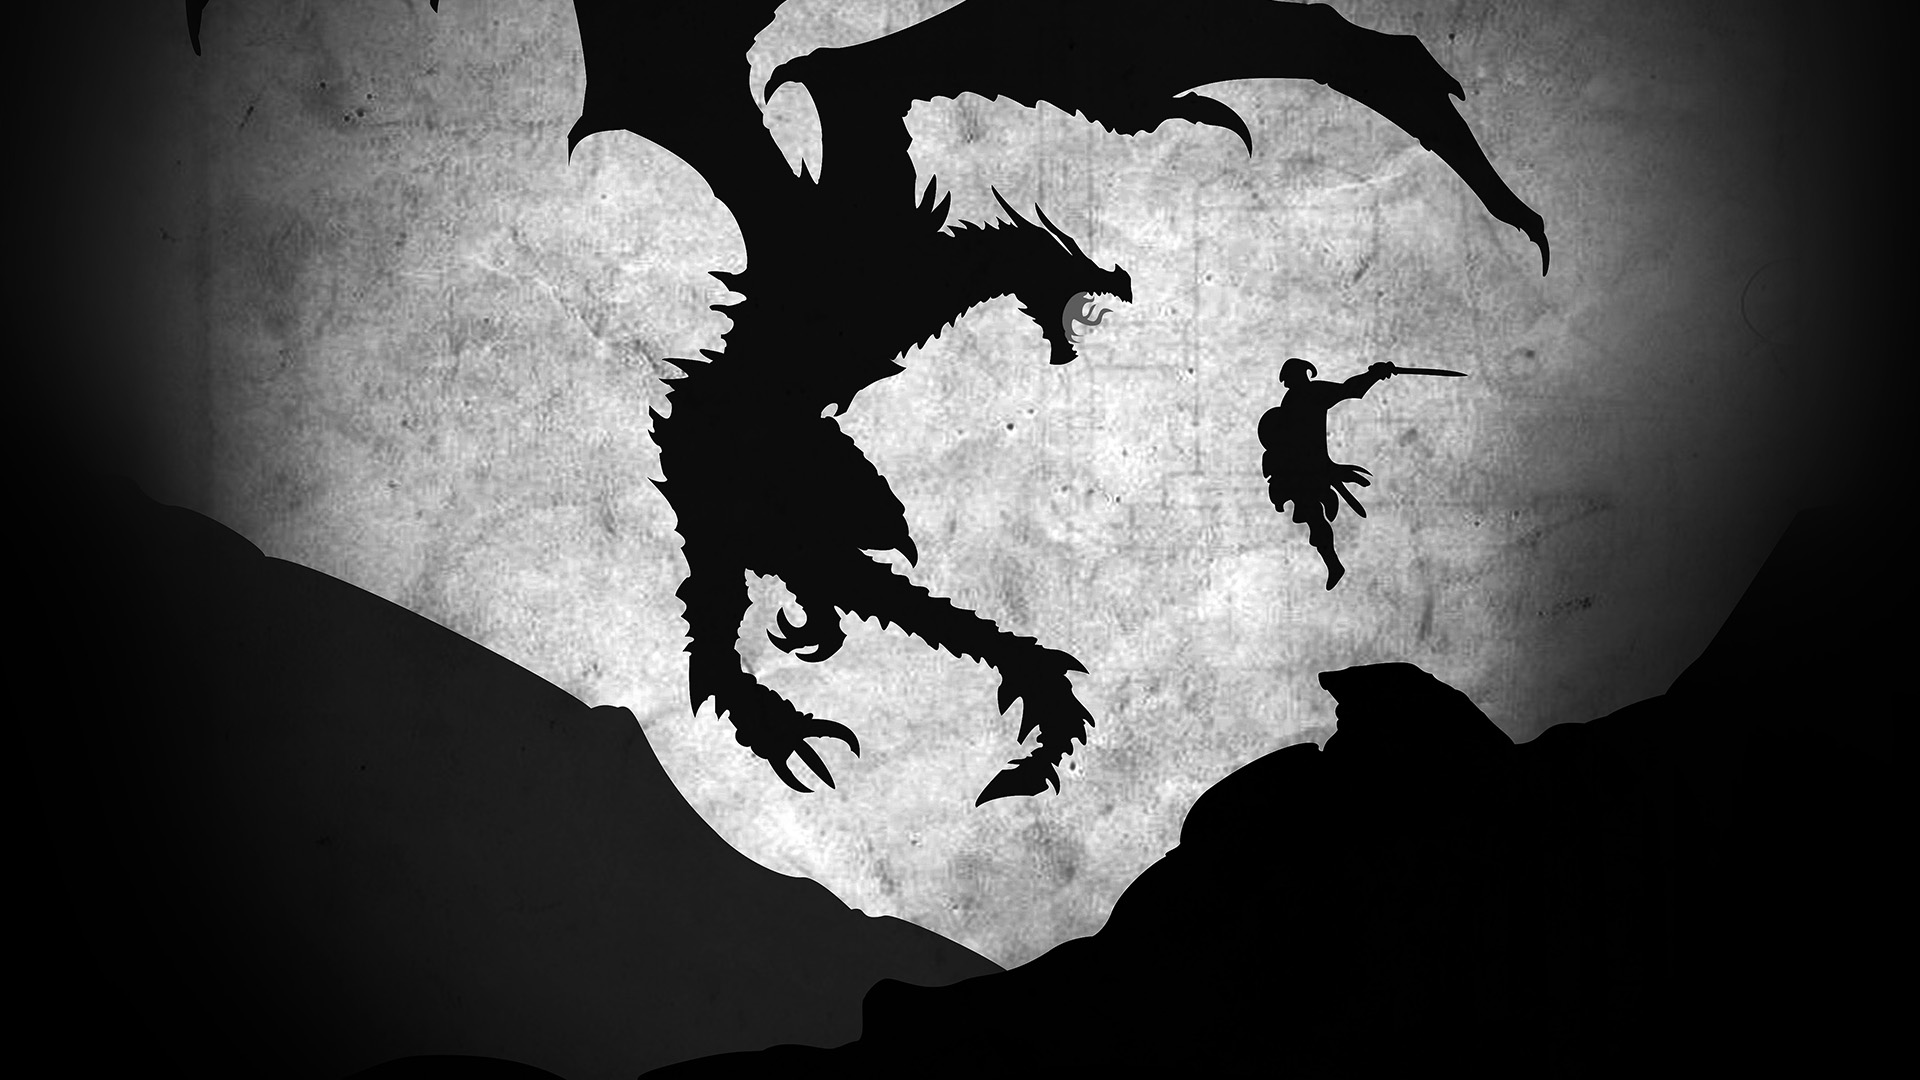 4k Fall Mountain Wallpaper Au58 Skyrim Dragon Illustration Art Bw Wallpaper